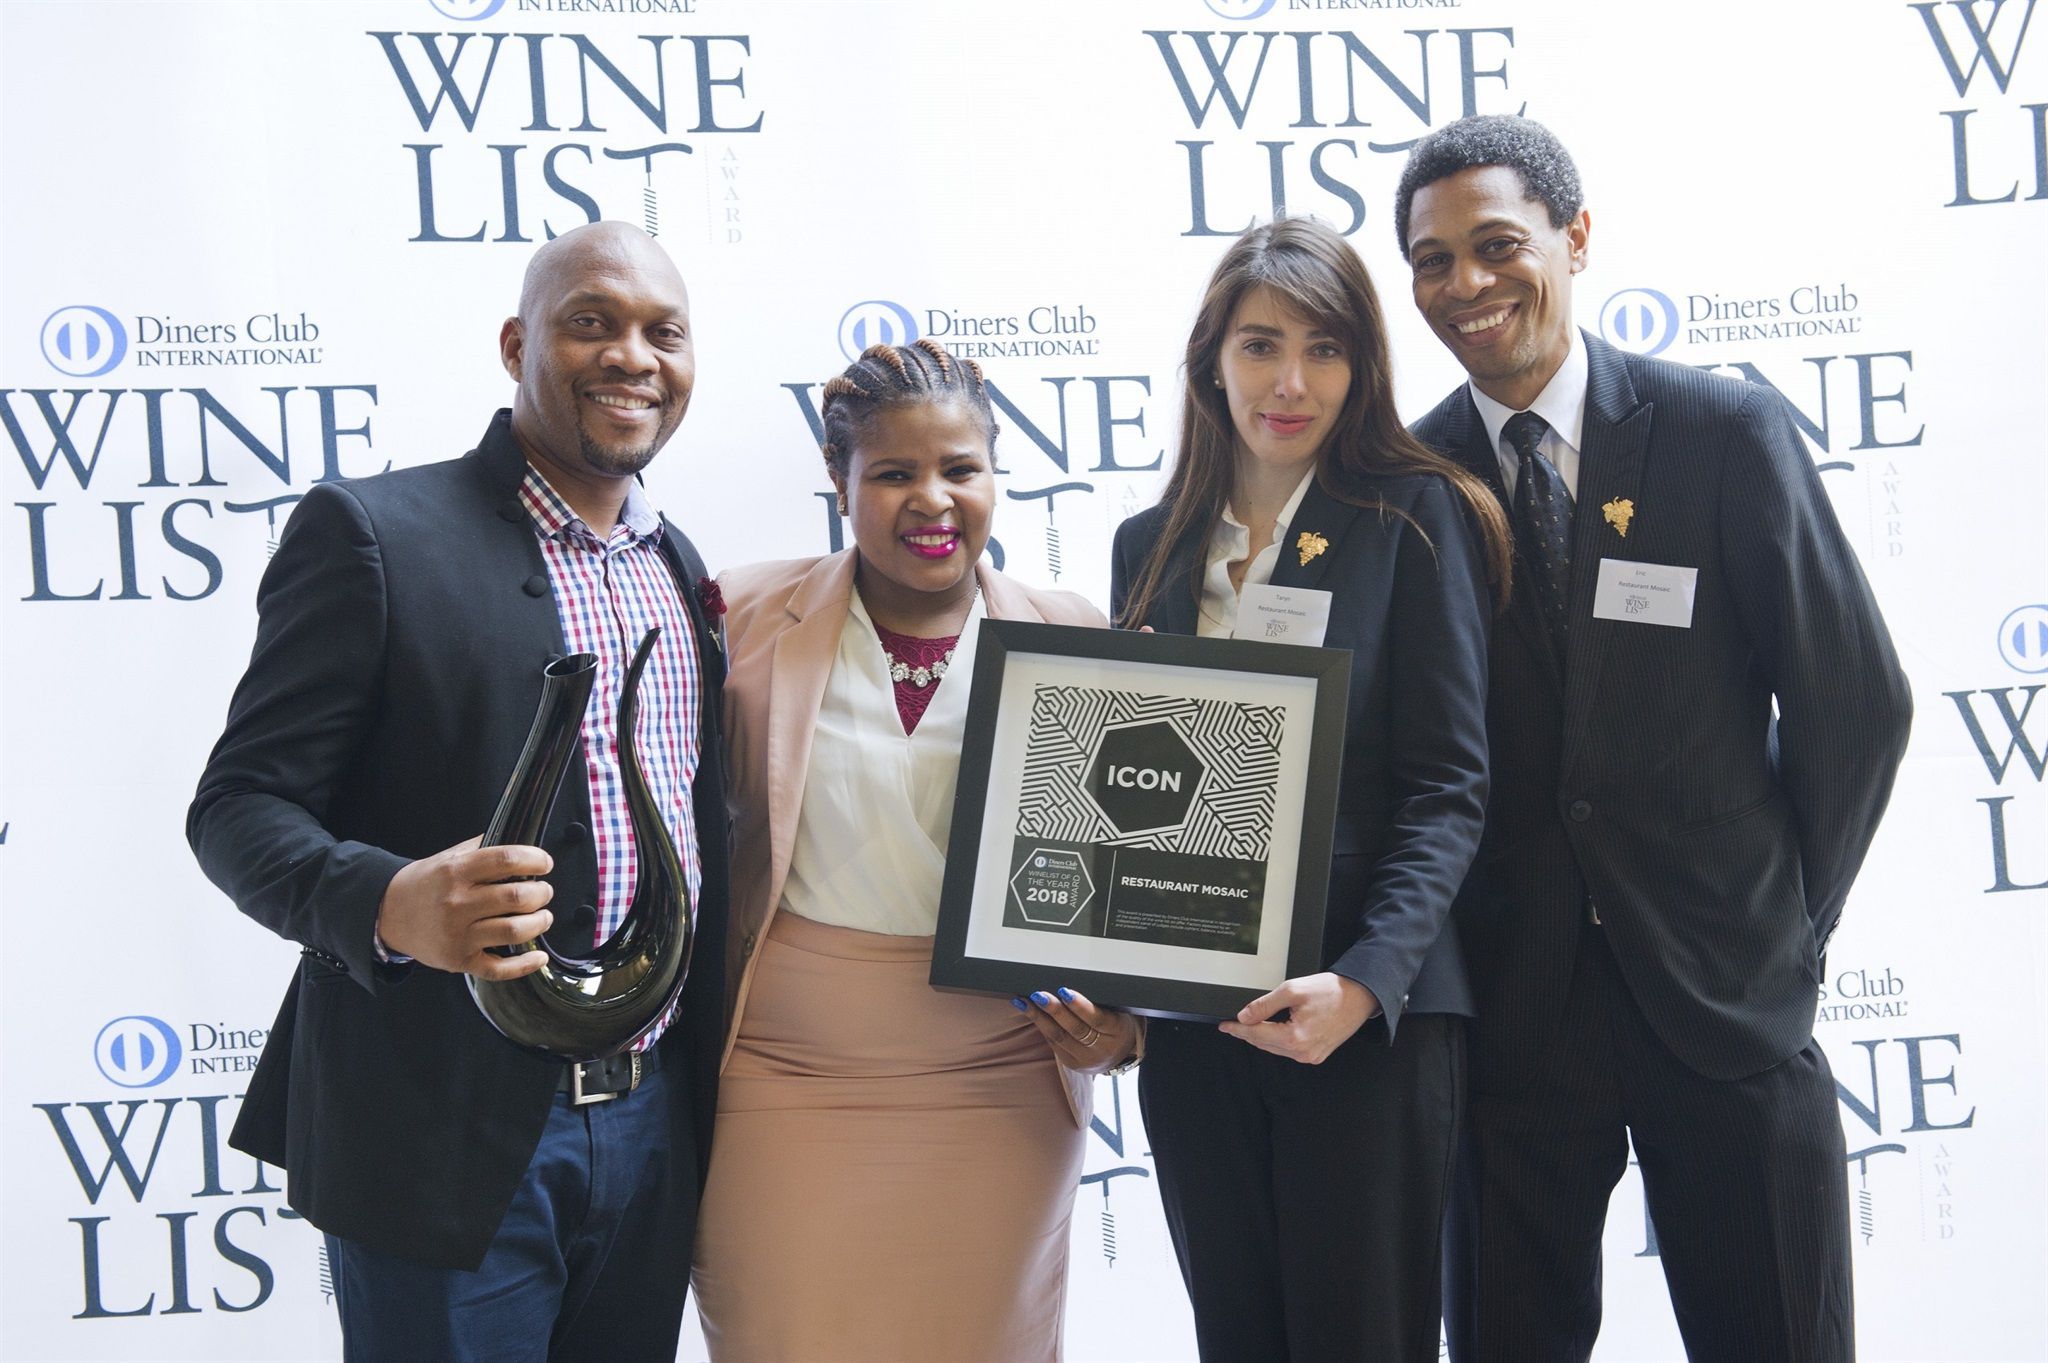 Diners Club Announces 2018 Winelist Awards Winners photo